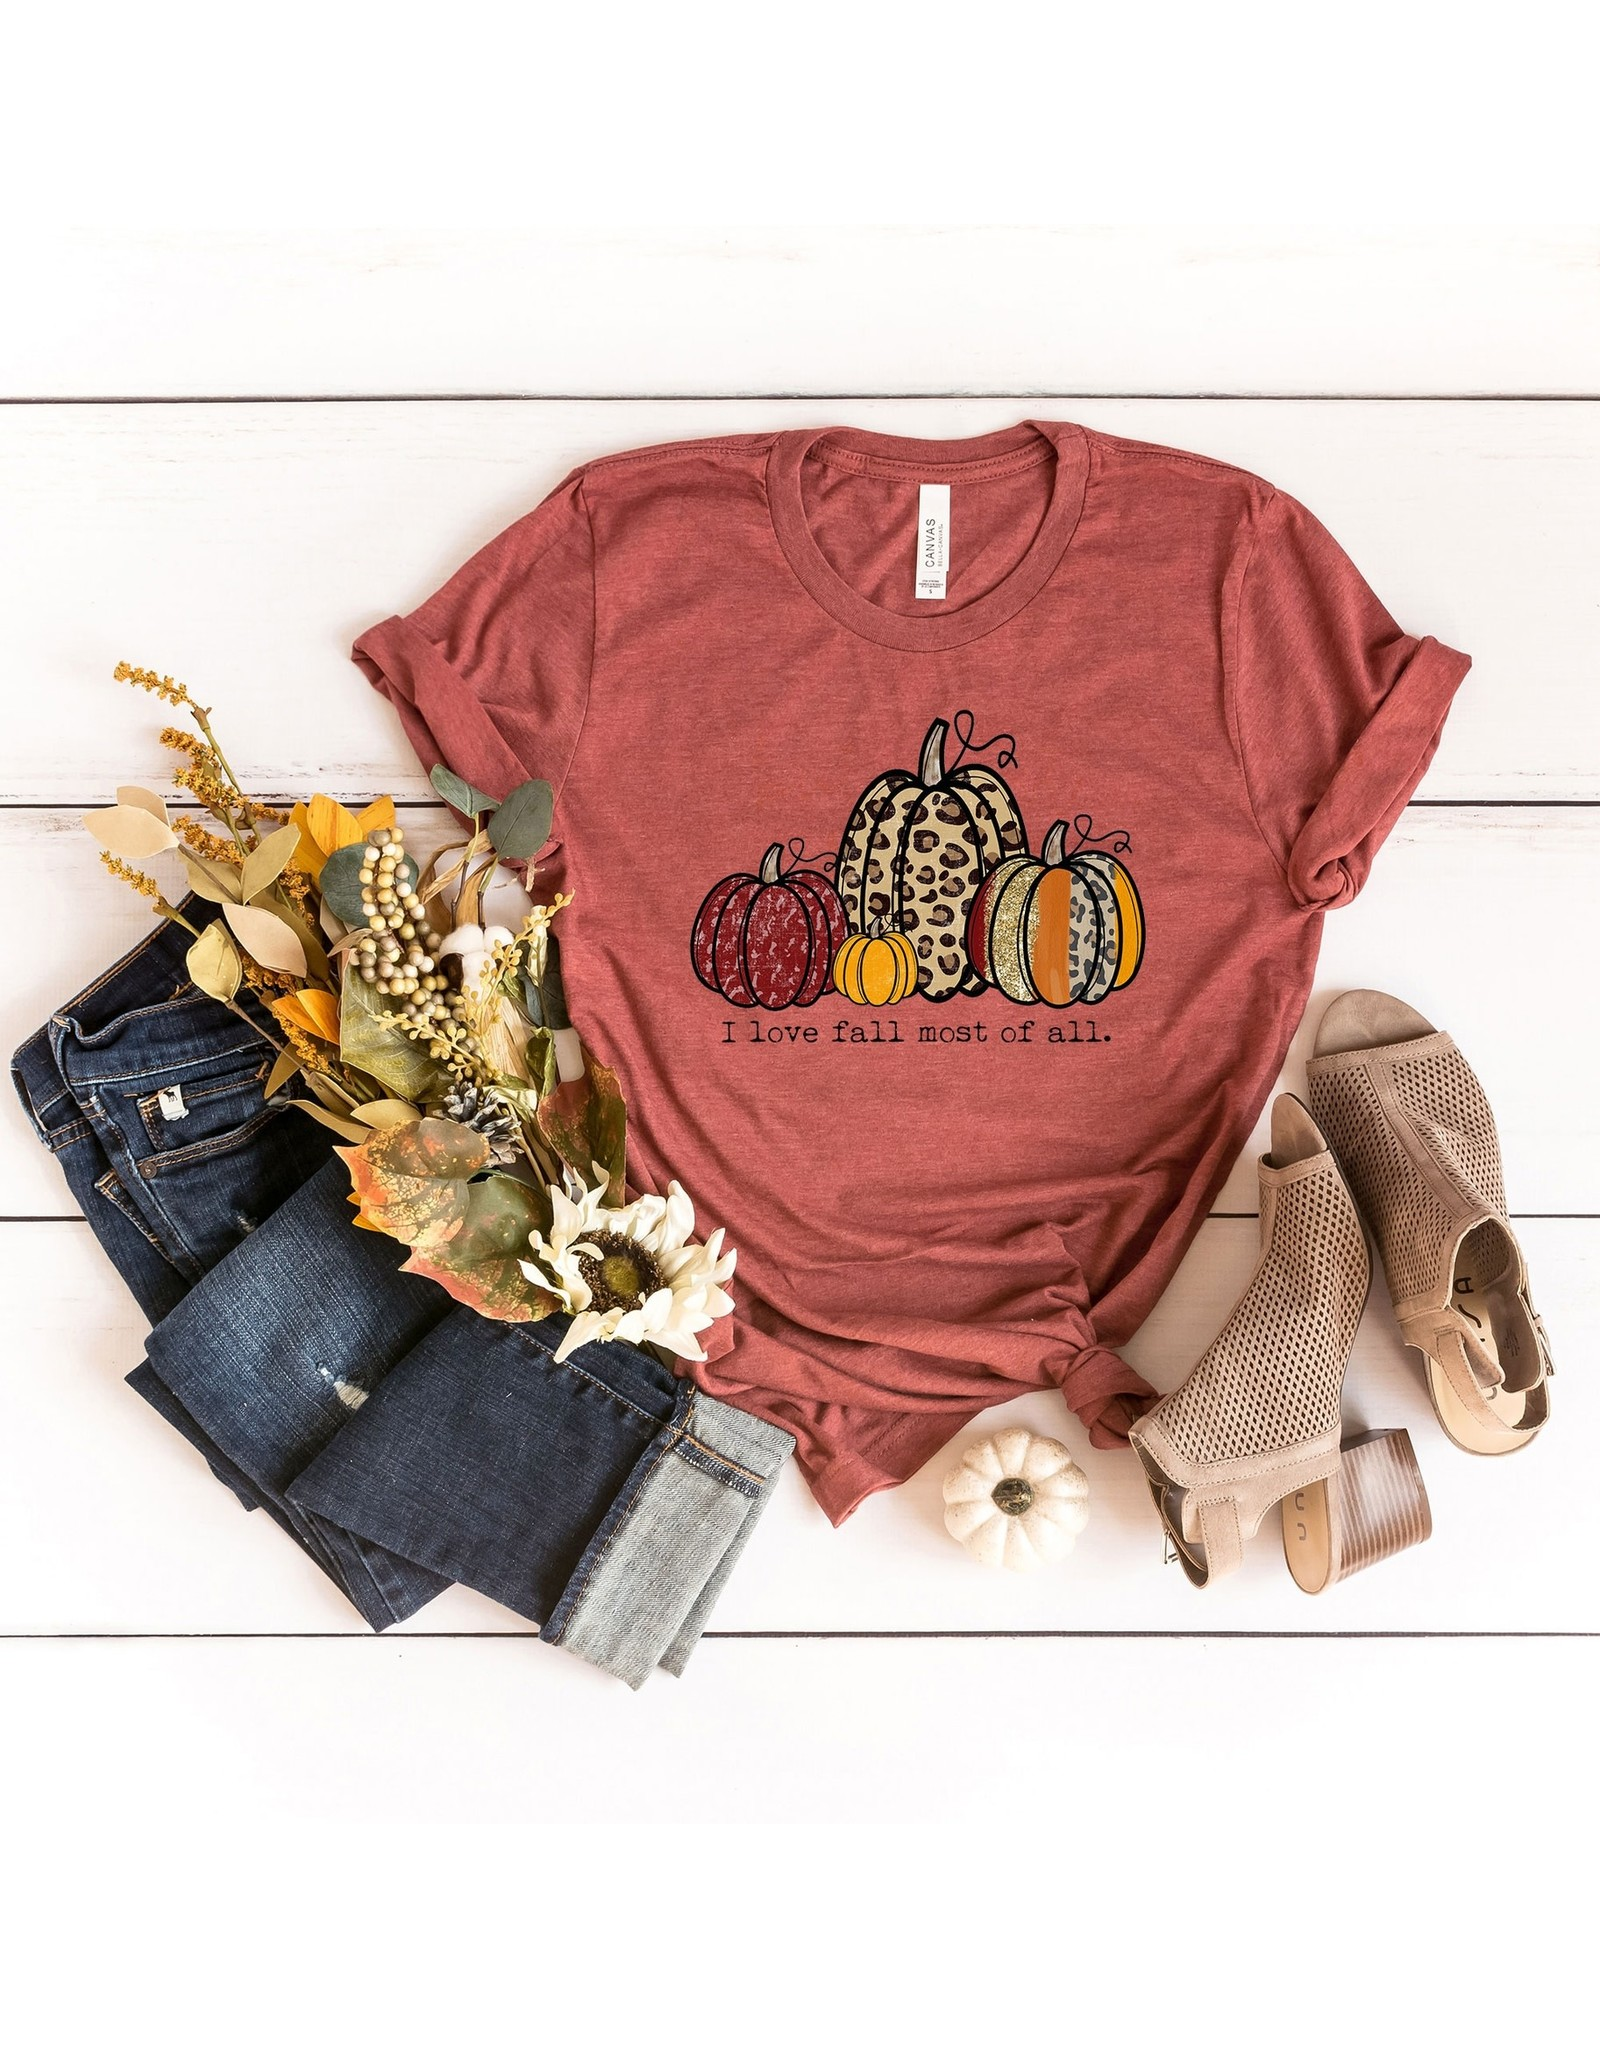 I Love Fall Most of All Tee